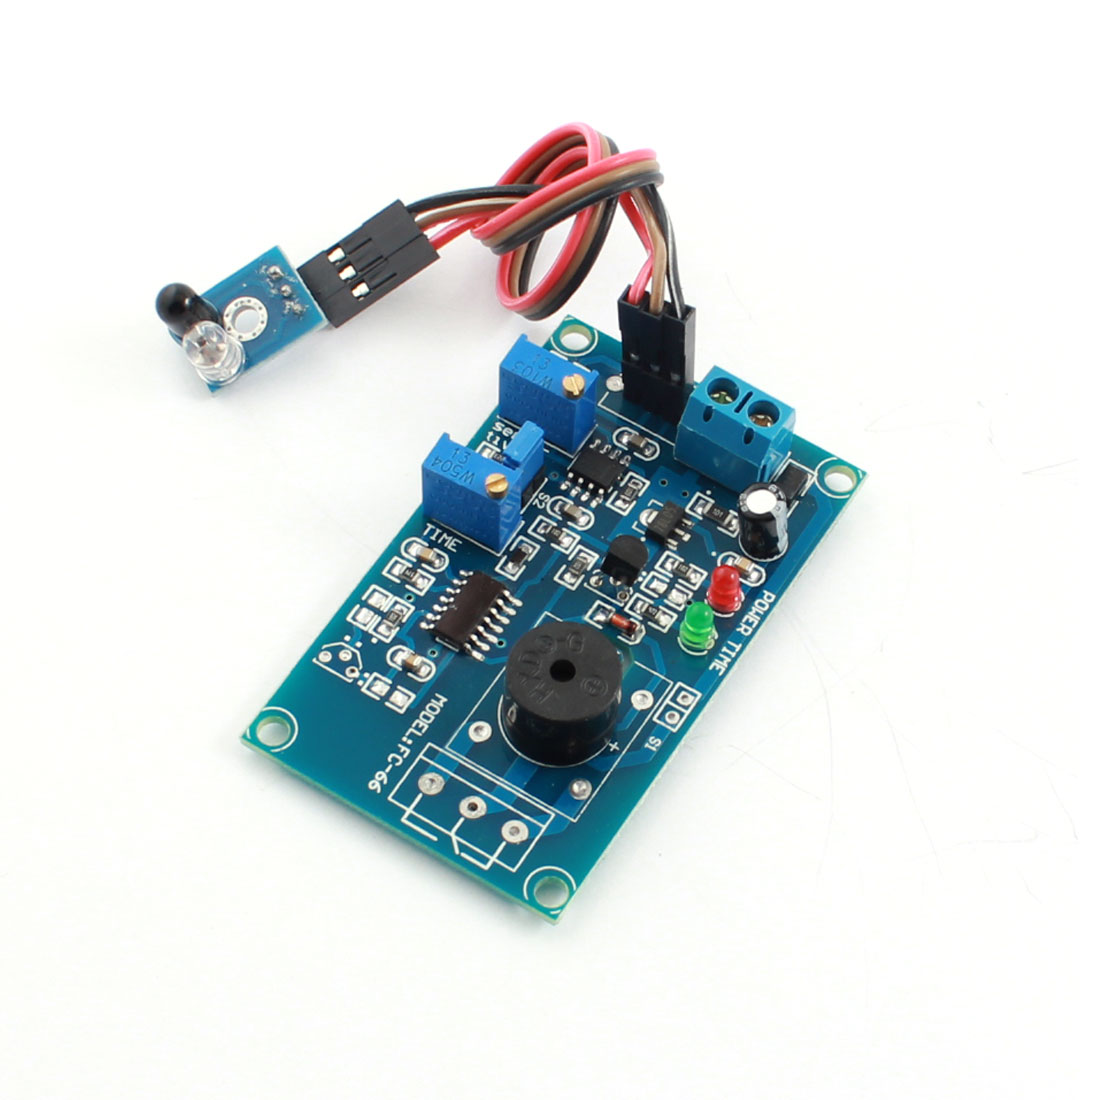 FC-66 DC12V Infrared Sensor Time Delay Circuit Module Blue w Buzzer